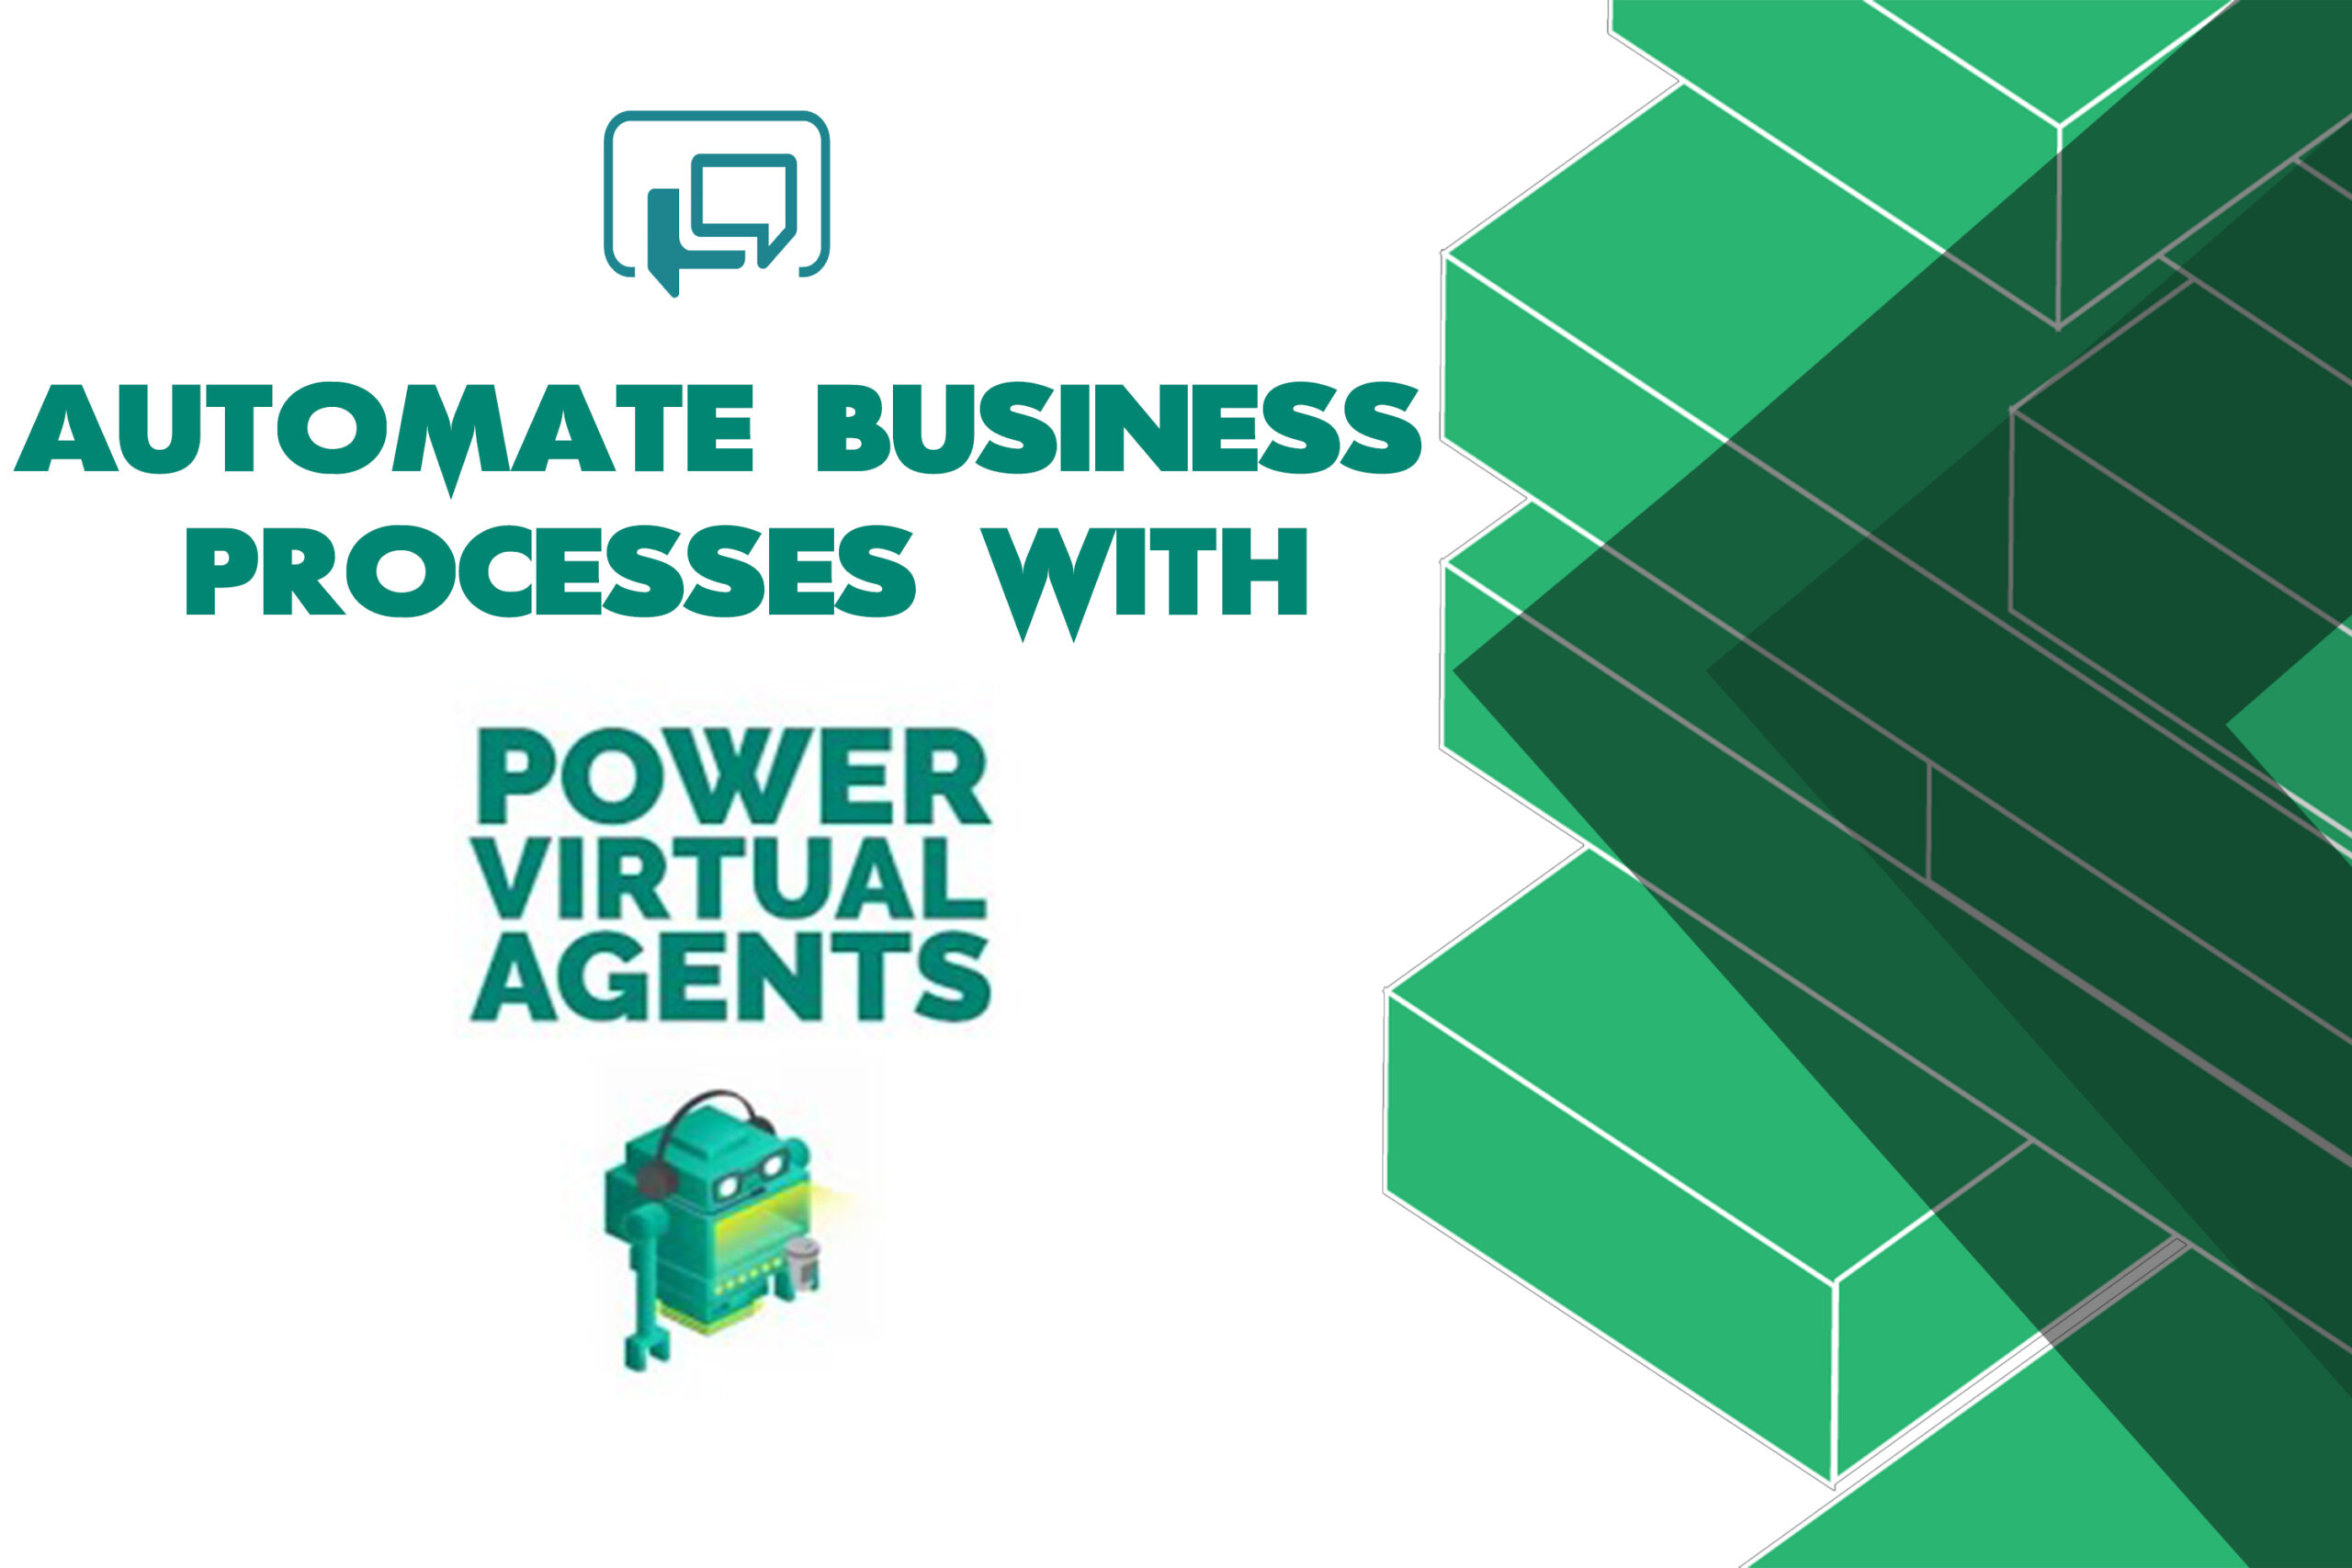 Automate Business Processes with Power Virtual Agents